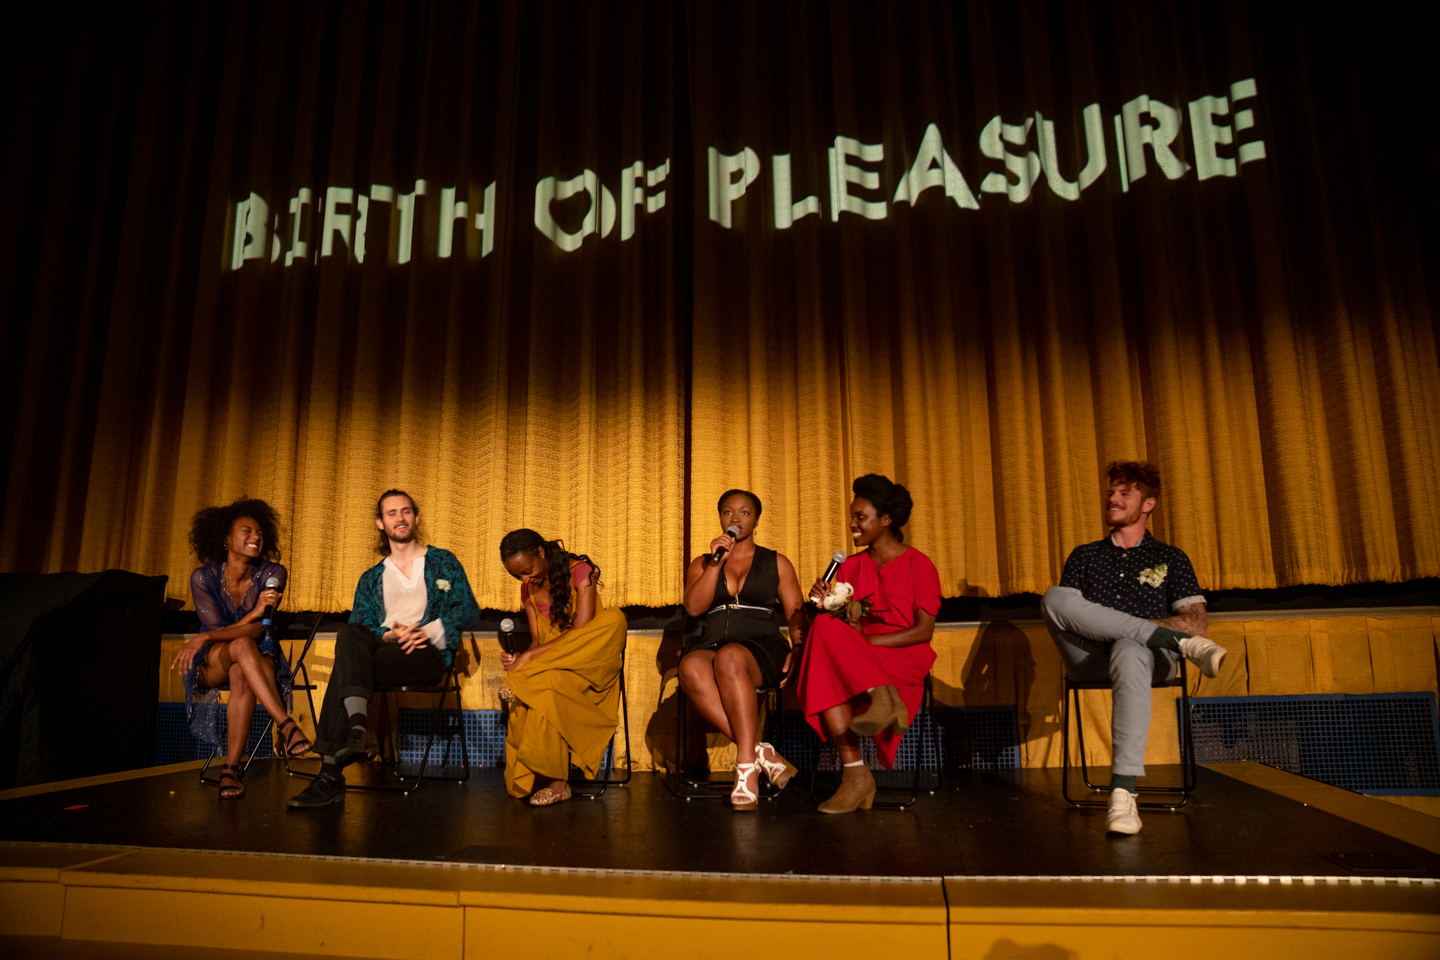 Birth of Pleasure Q&A at Plaza Theatre. May 13, 2019. Photo by Kimara Alan Dixon.  Left to Right: Naomi Mack (1st AD), Lev Omelchenko (Director), Amber L N Bournett (DoP), Sharon Carelock (Venus), Anicka Ausitn (Co-Director, Choreographer), Chris Gravely (Composer)